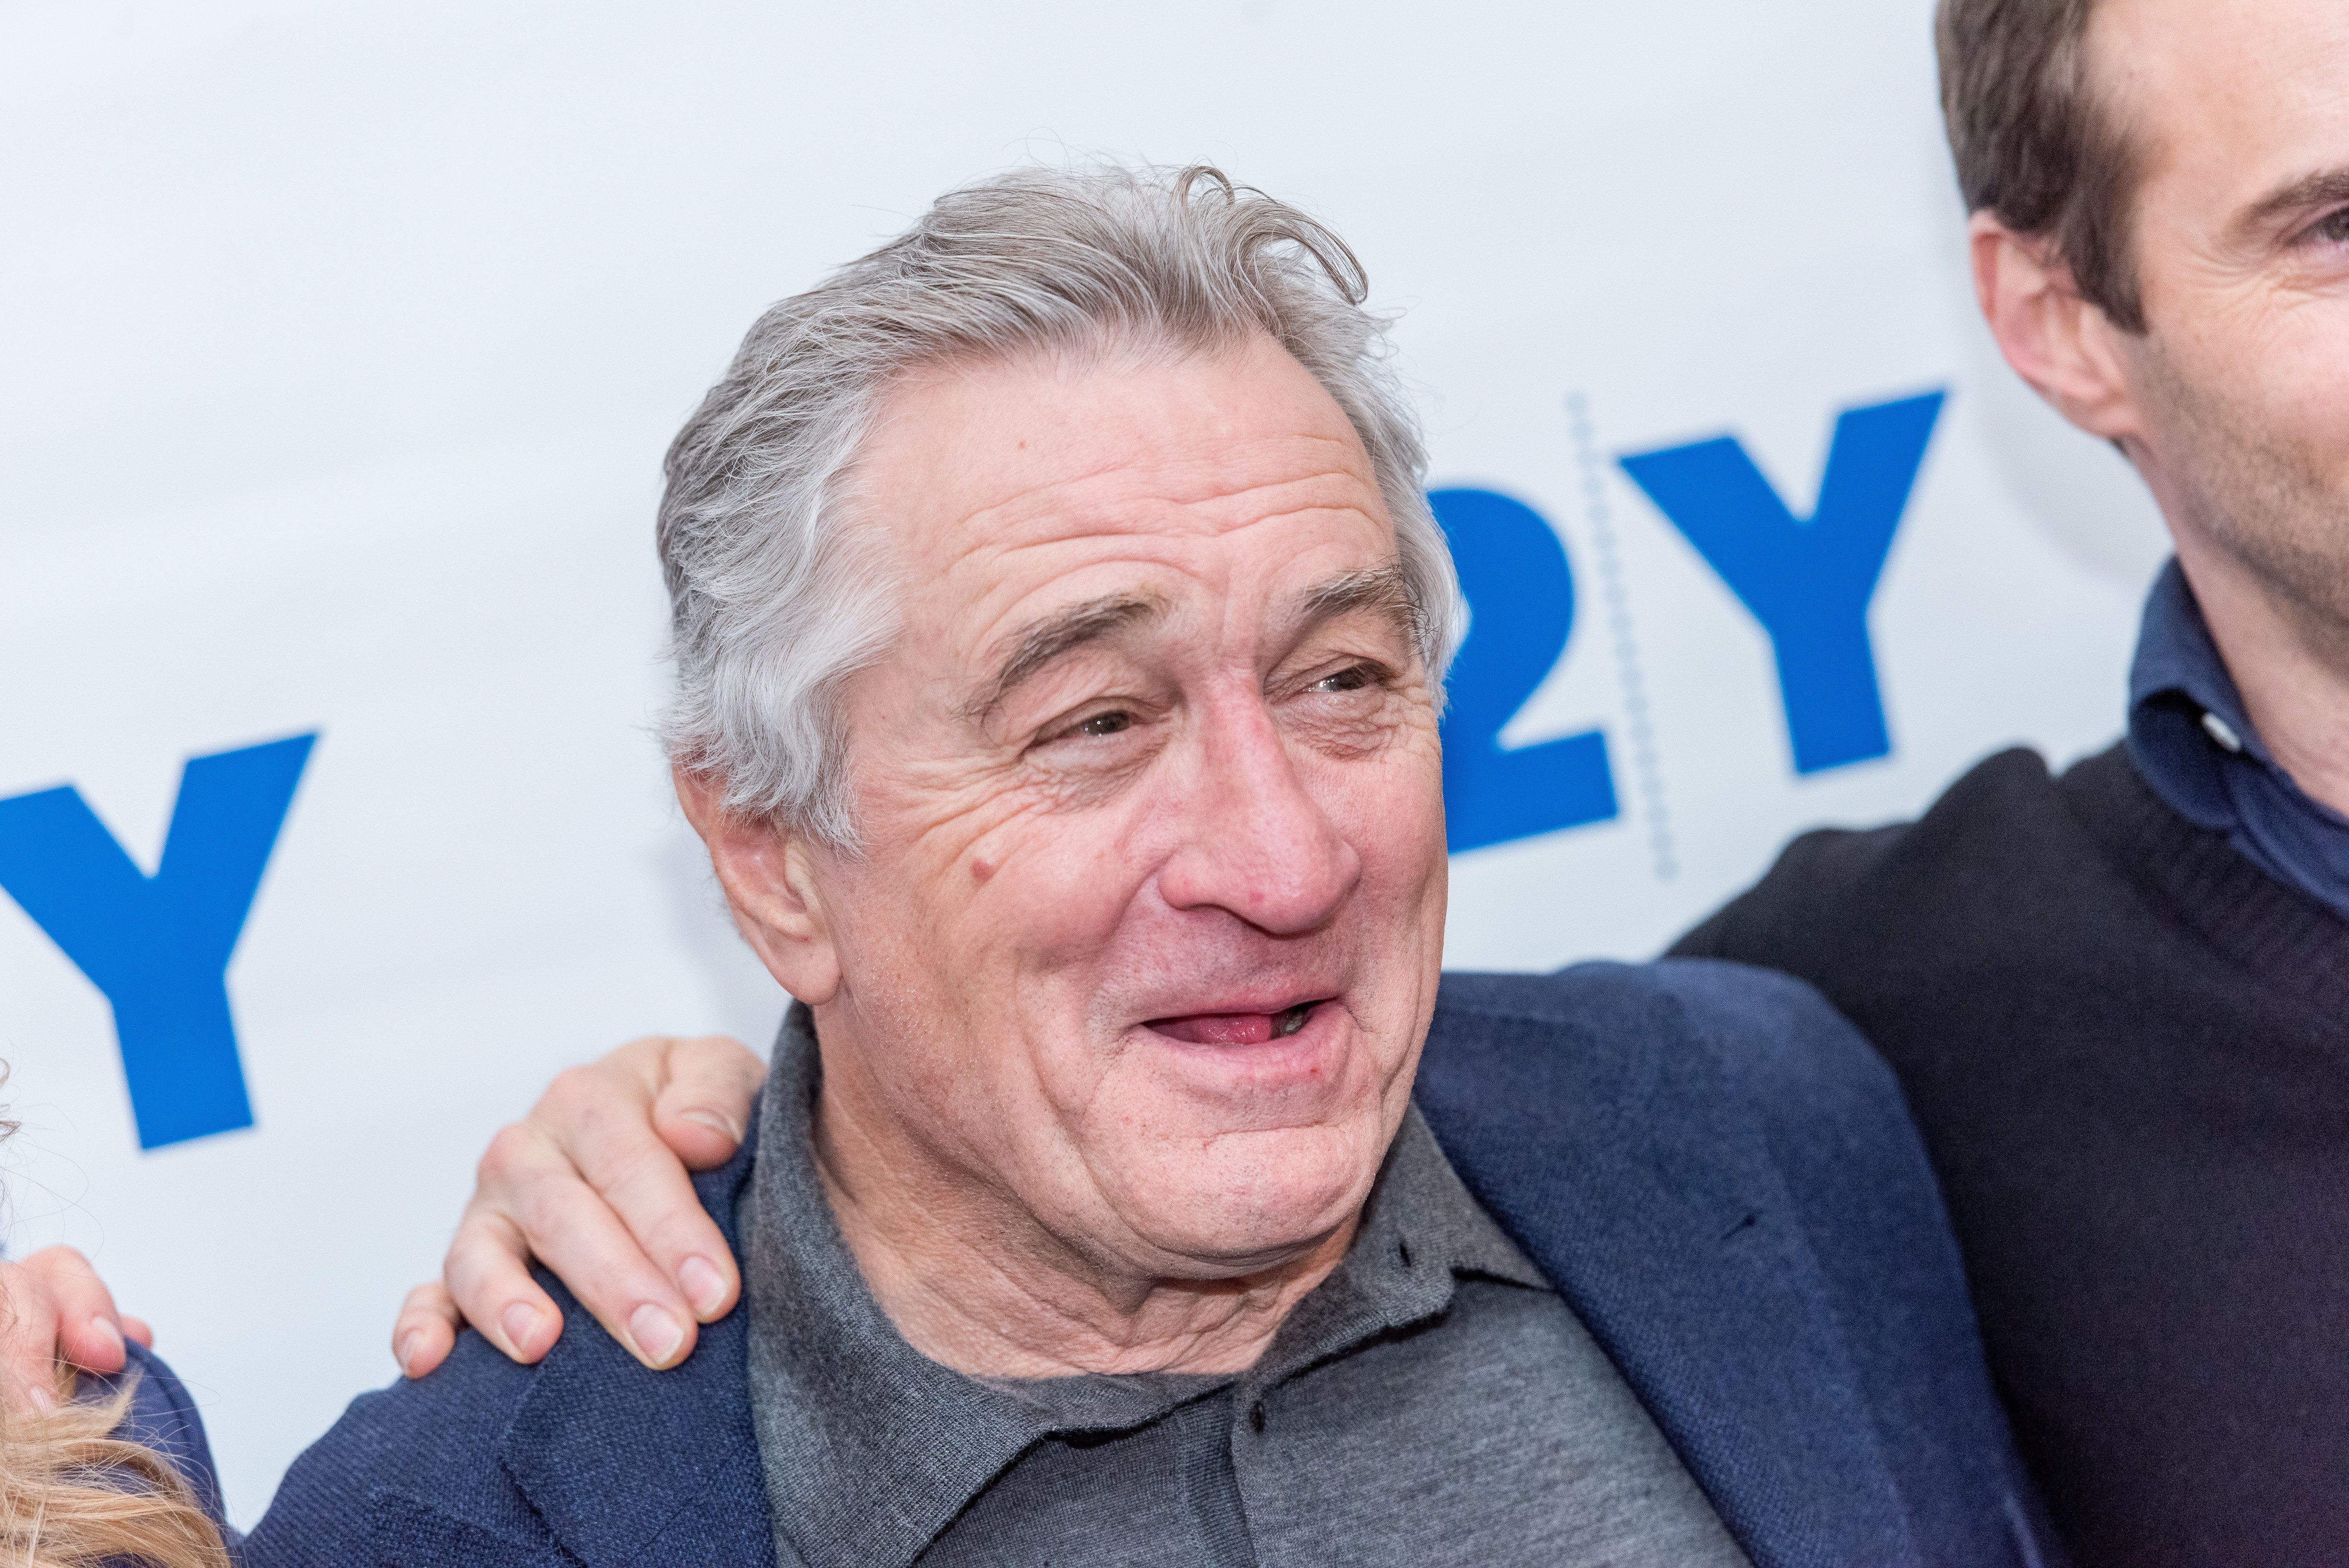 Robert De Niro Calls America 'A Tragic Dumbass Comedy' During Brown University